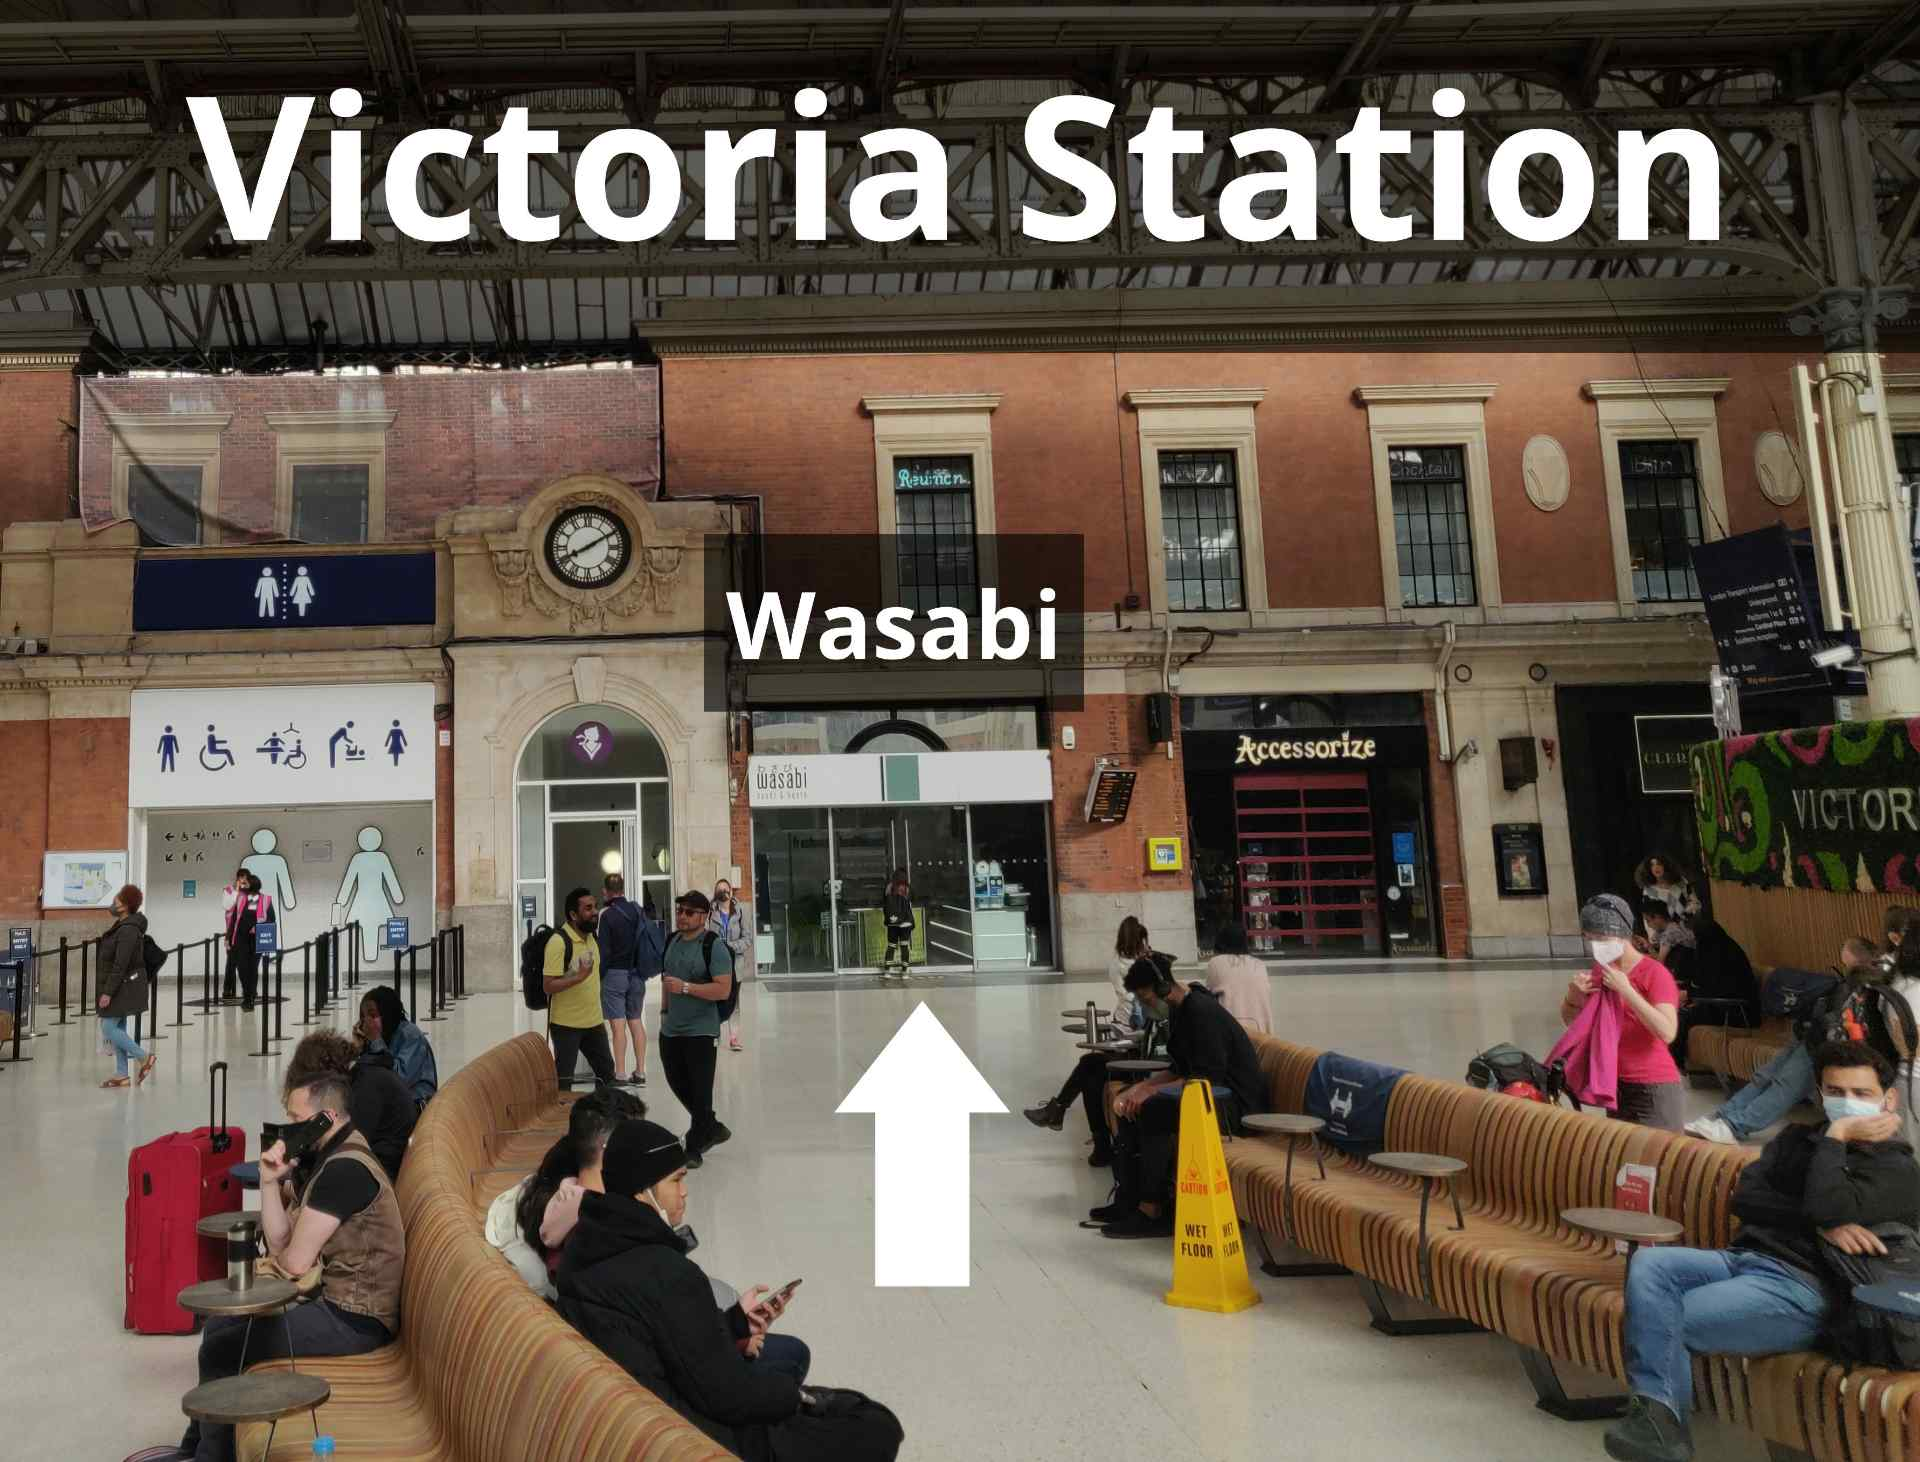 Victoria Station meeting point